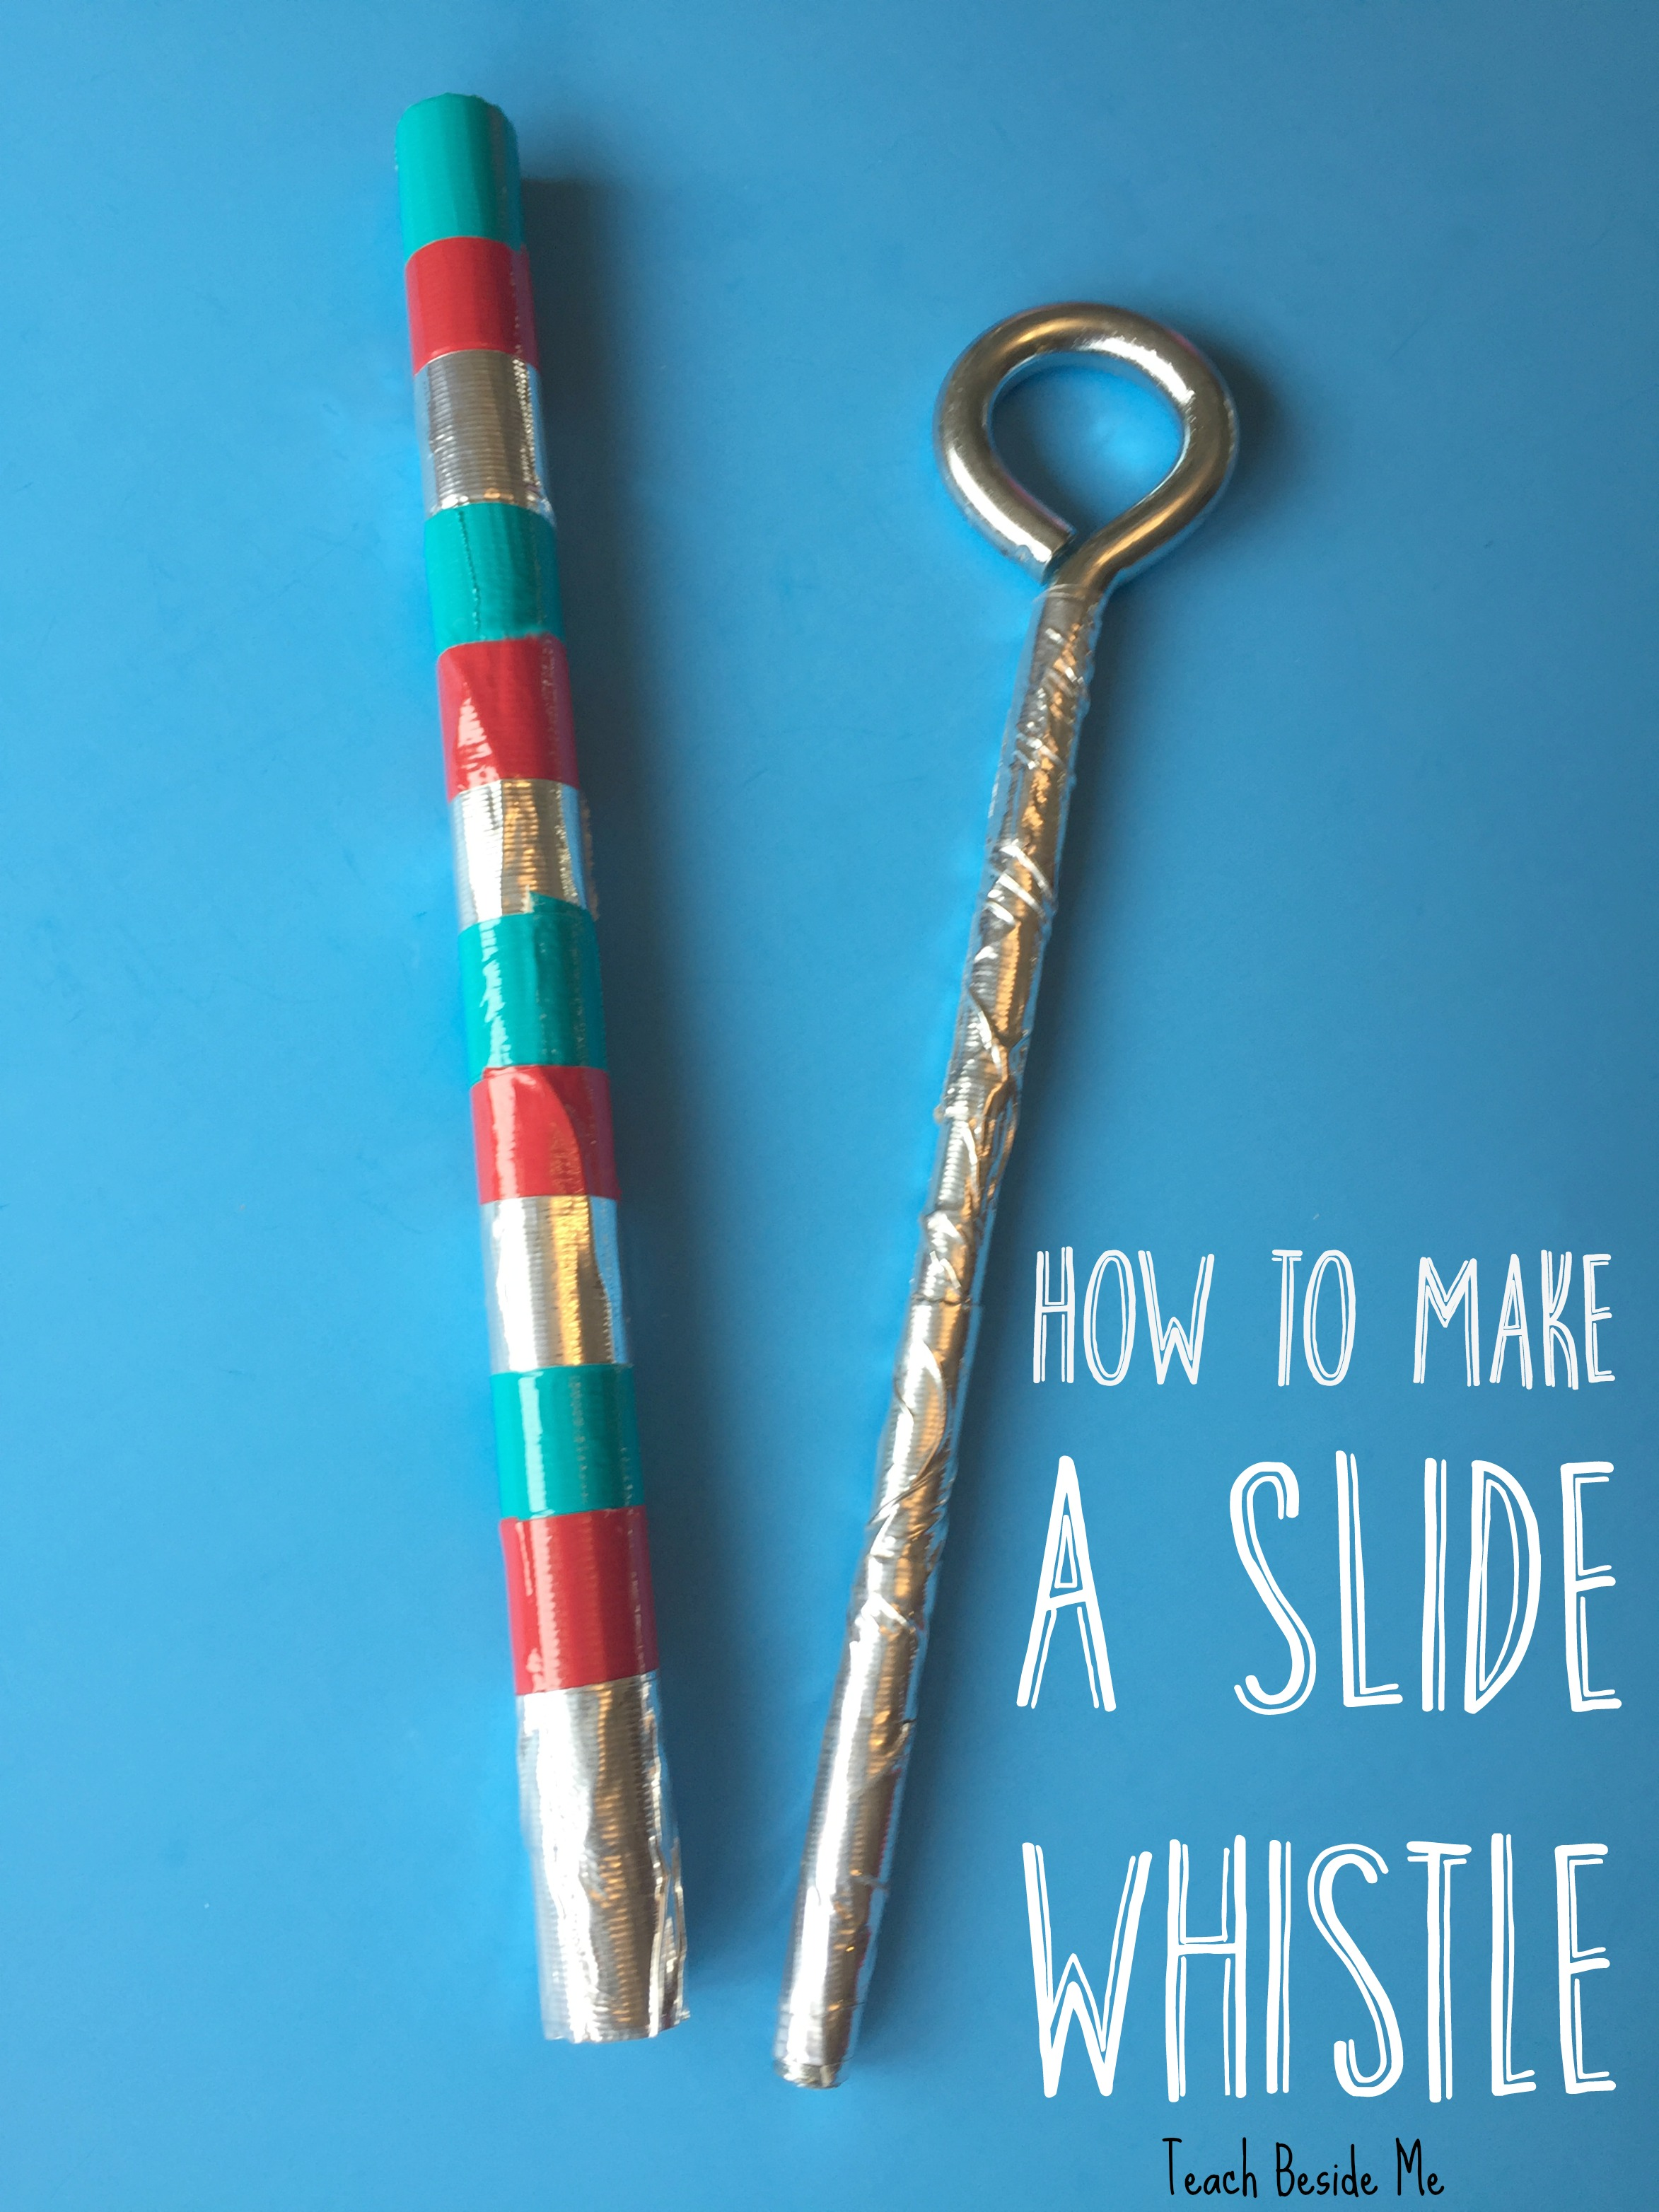 How to Make a Slide Whistle